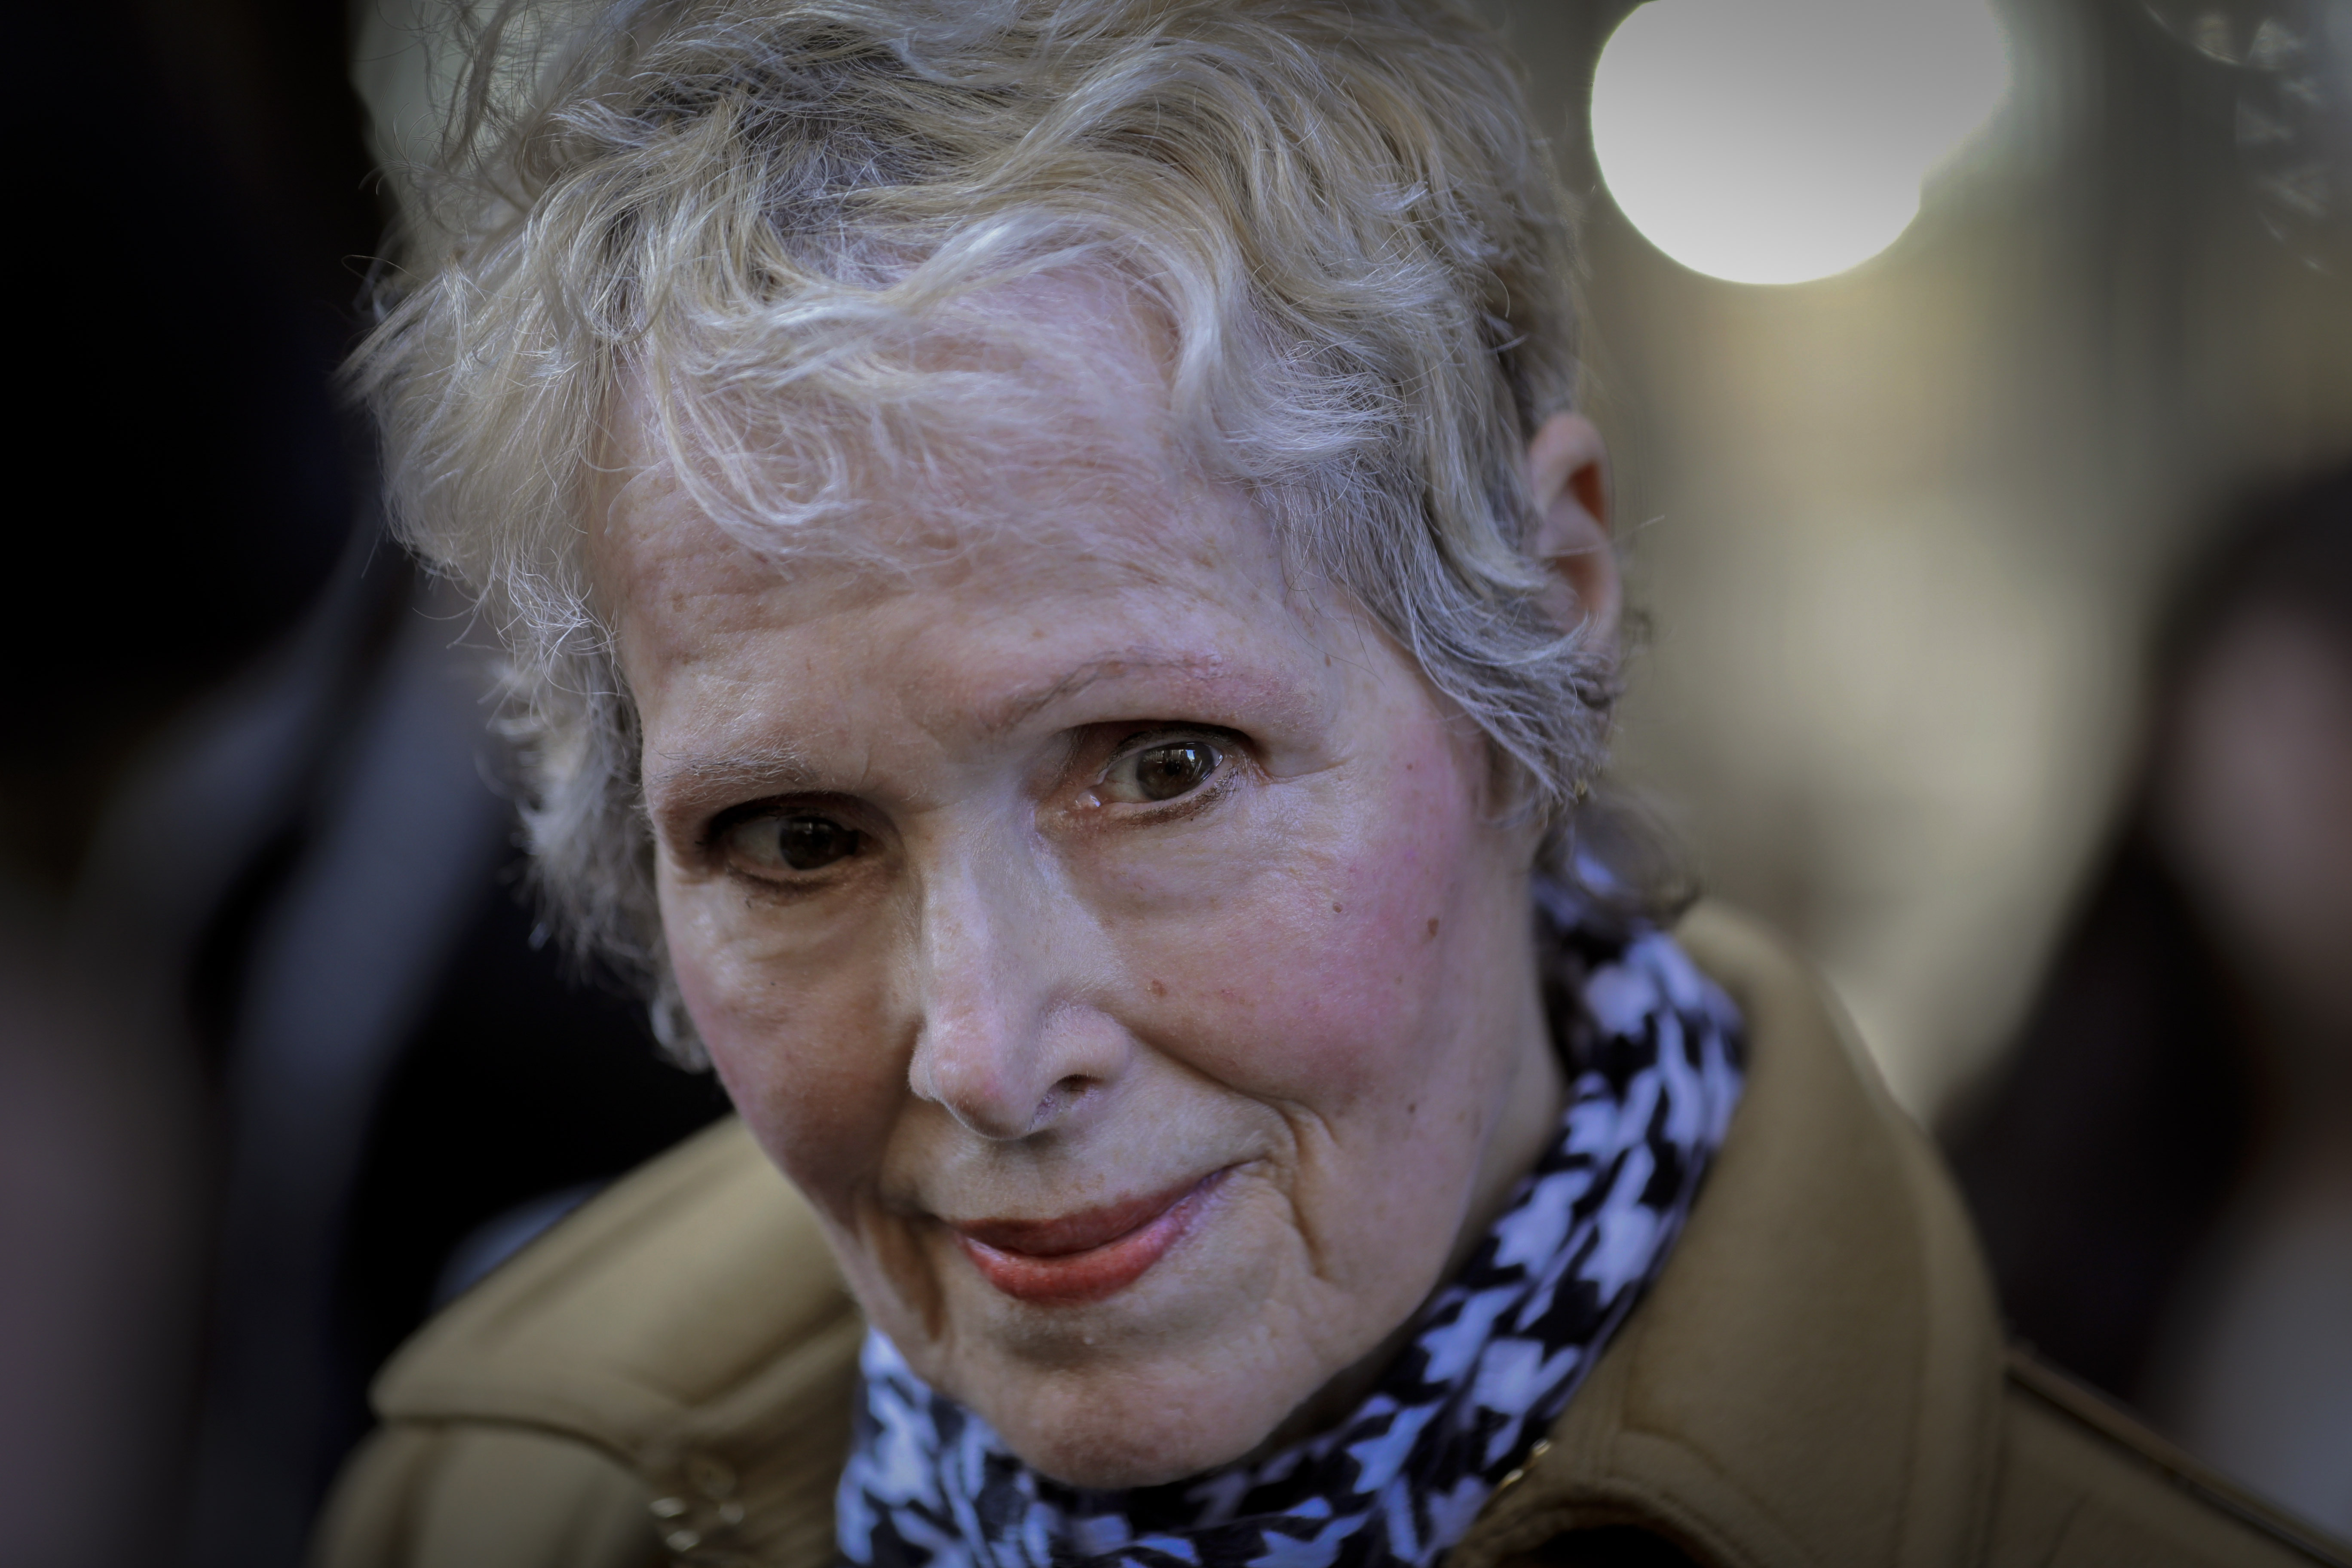 E. Jean Carroll talks to reporters outside a courthouse in New York on March 4, 2020.